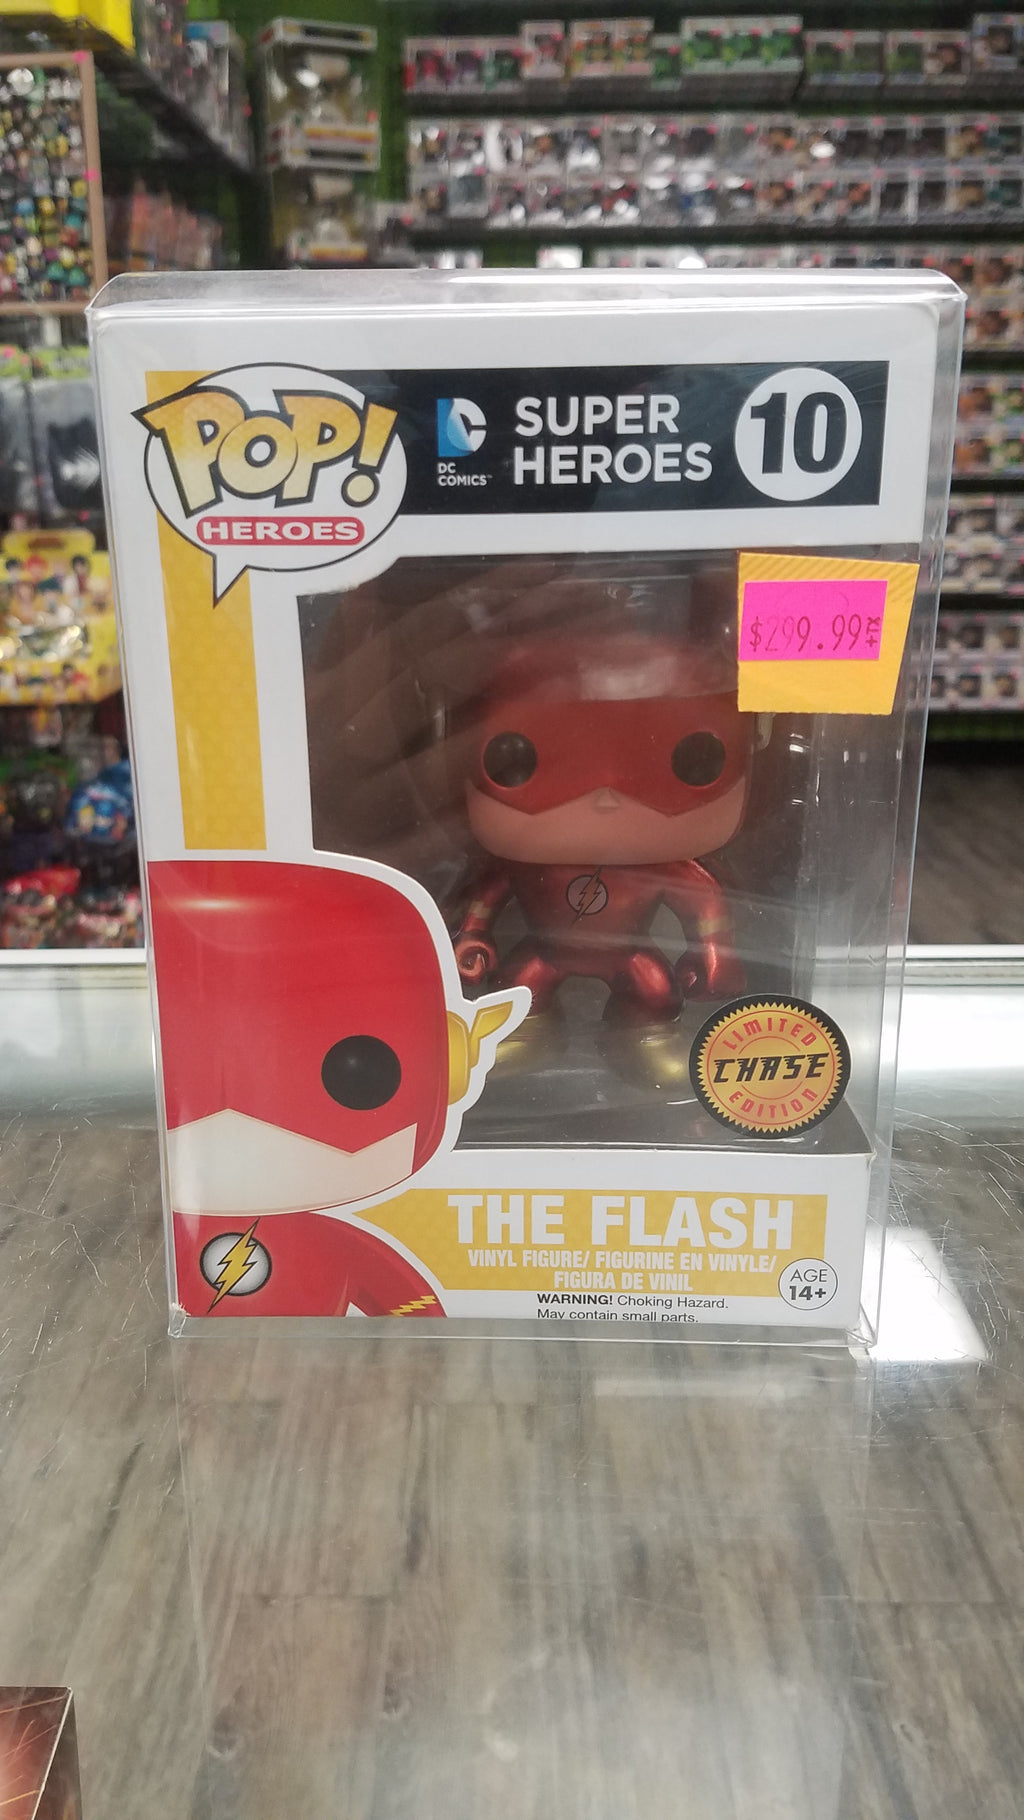 FUNKO POP! Heroes #10, DC Comics Superheroes, The Flash (Chase, Limited Edition)